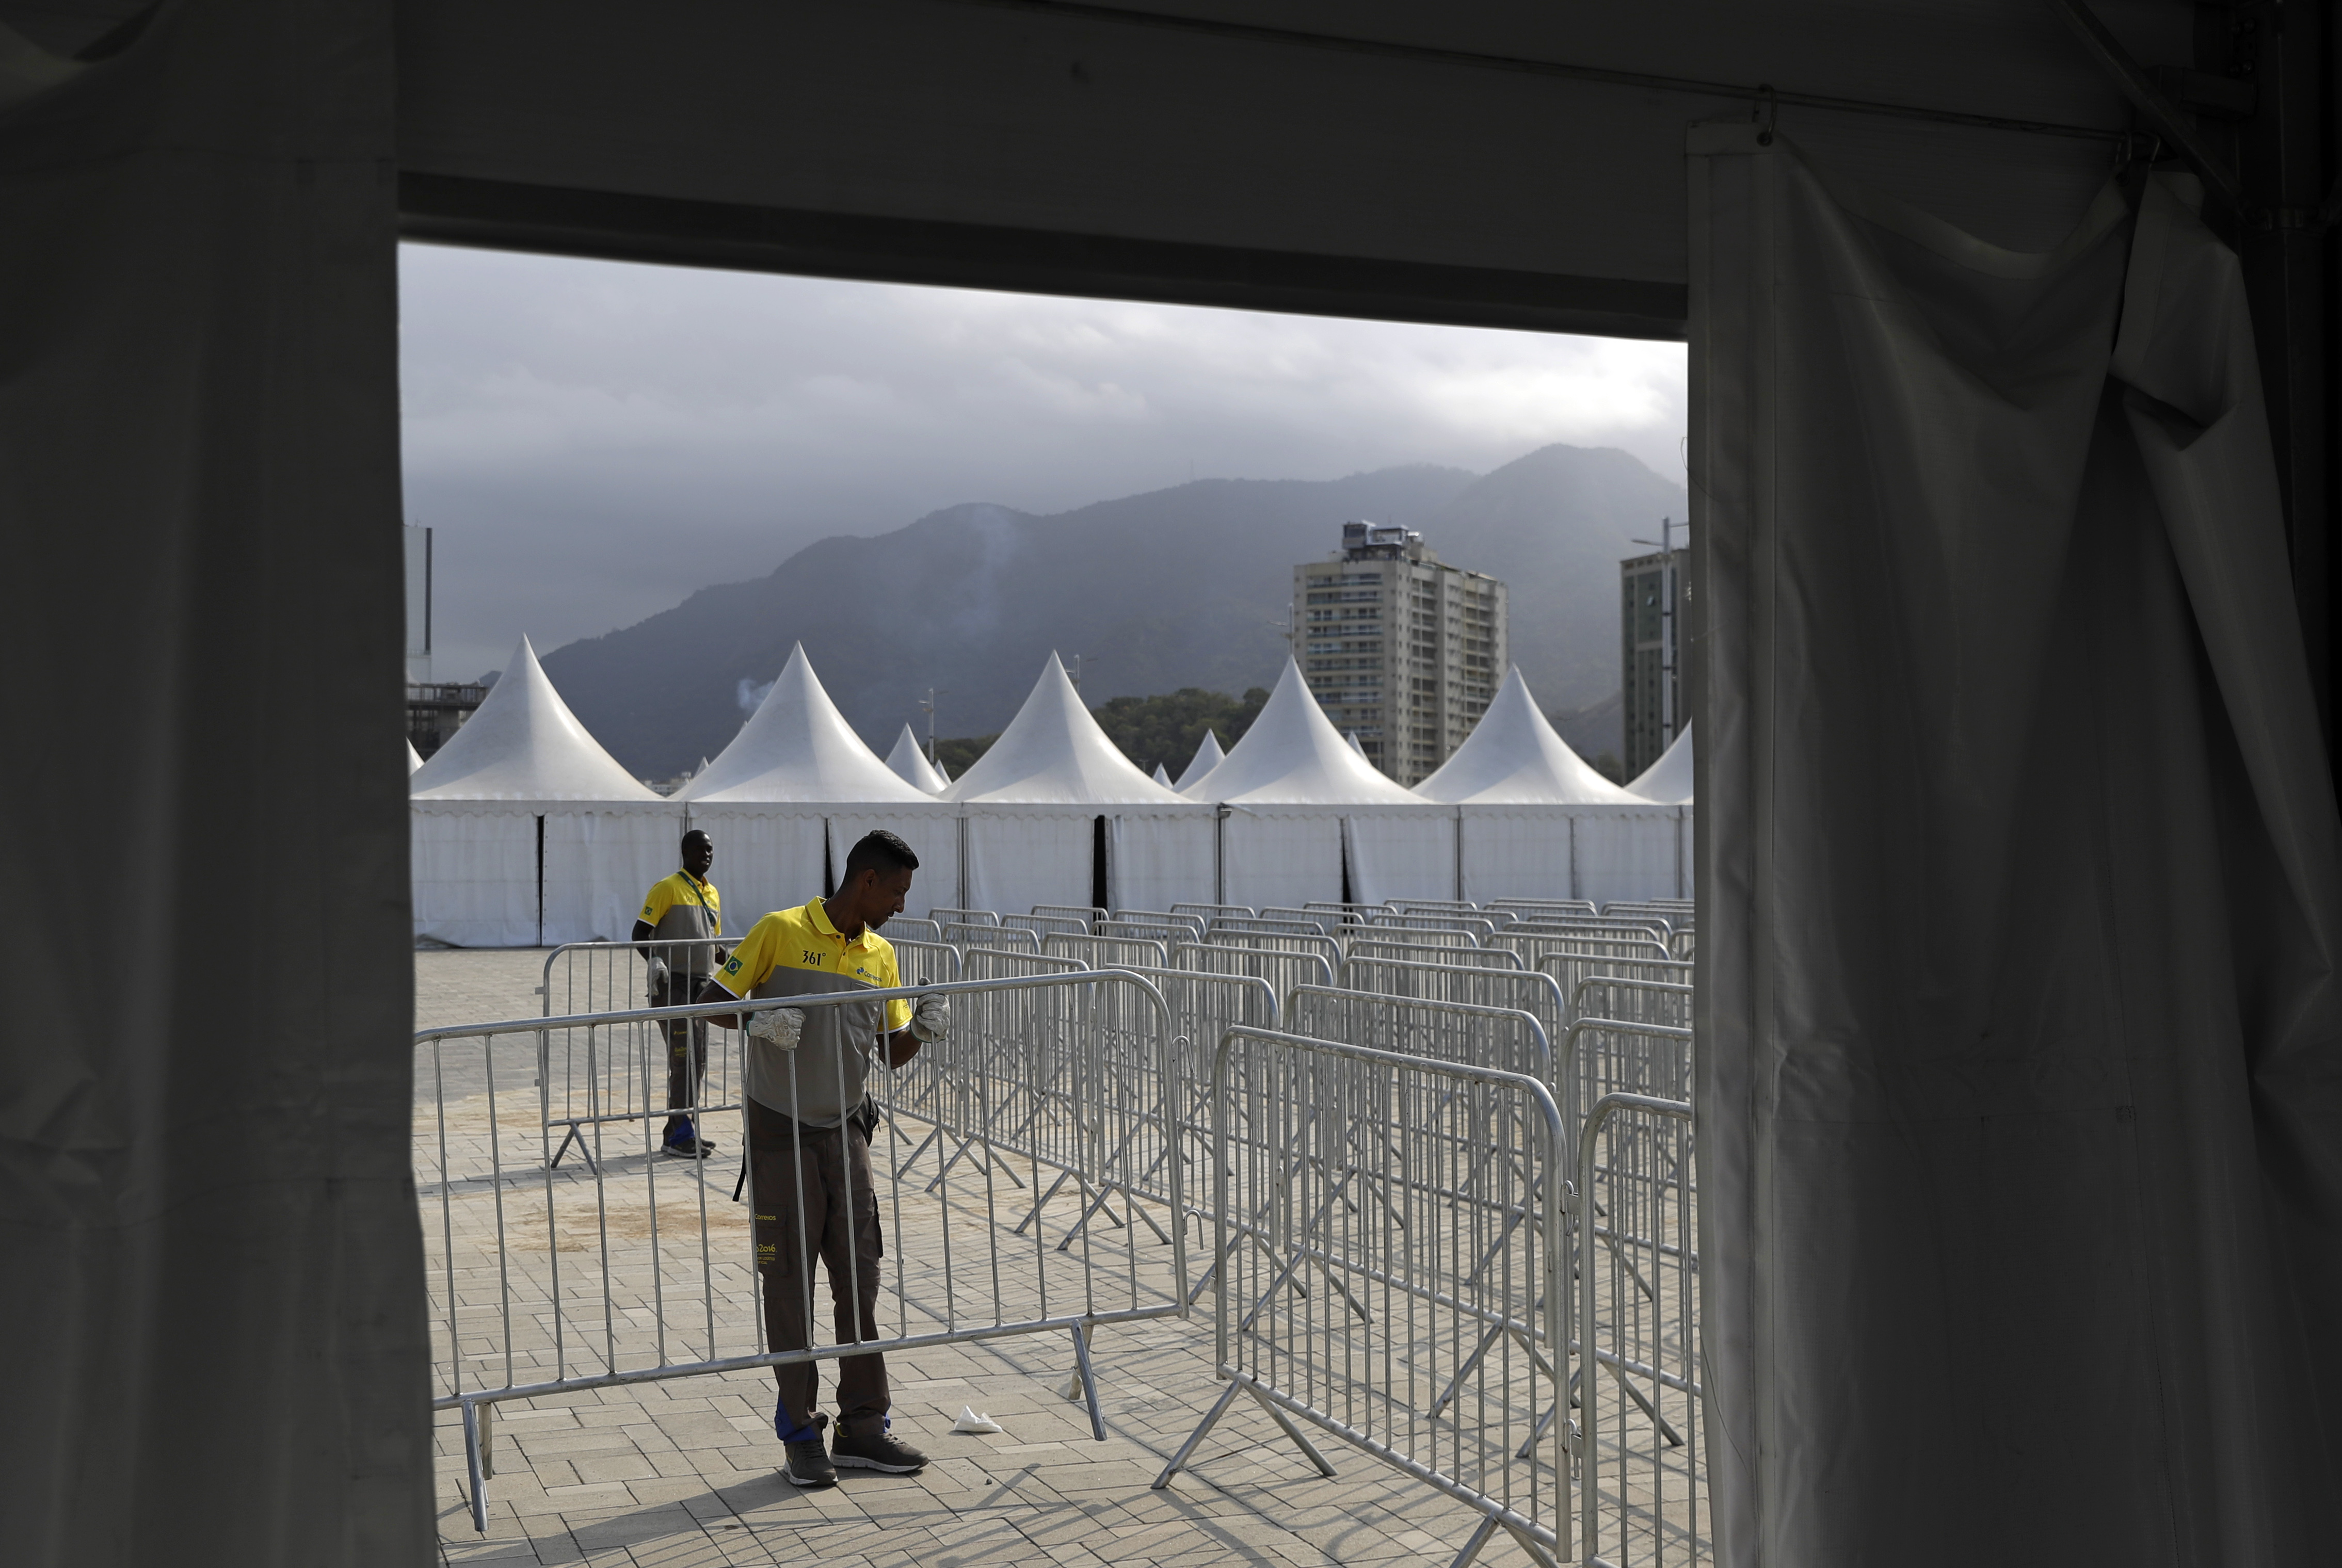 Workers install barricades in preparation for the 2016 Rio de Janeiro Games inside Olympic Park in Rio de Janeiro, Brazil, Friday, July 29, 2016. (AP Photo/Patrick Semansky)